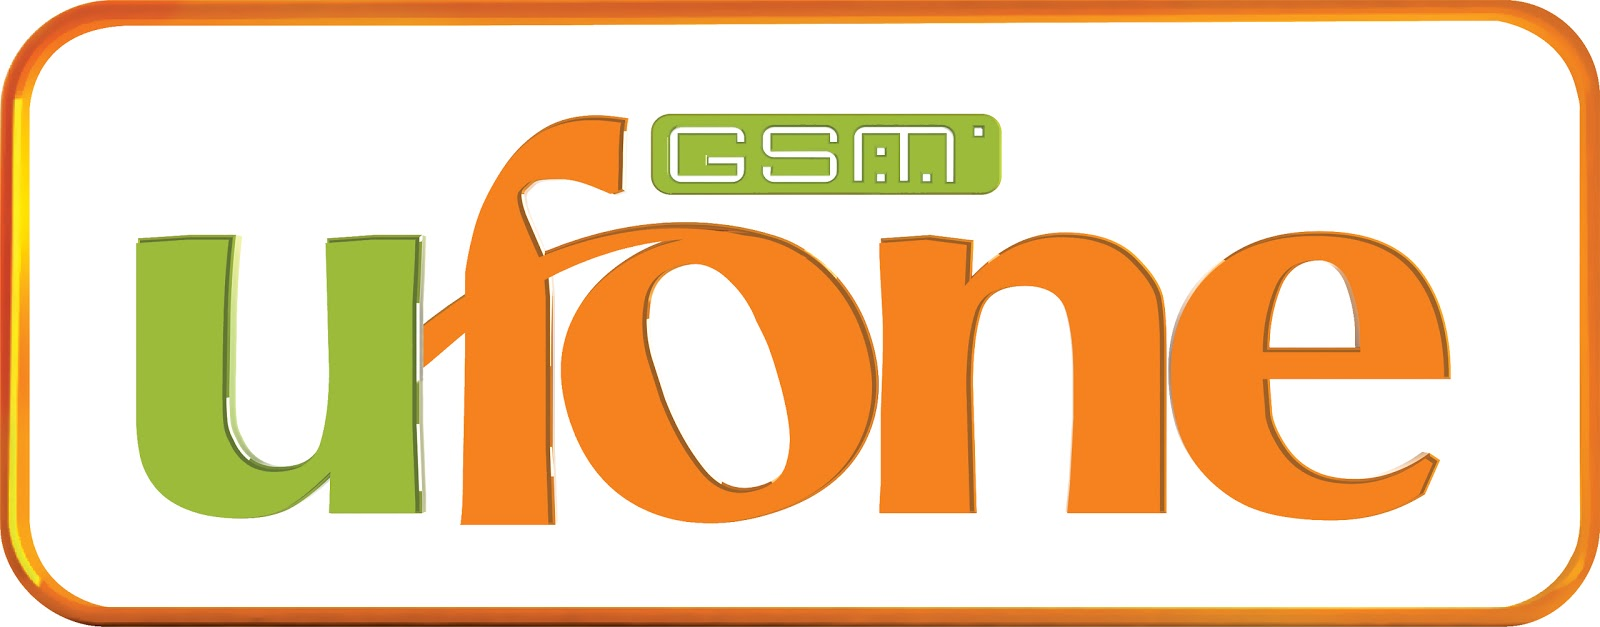 Ufone Prepaid Internet Packages 2018 Daily, Weekly, Monthly Price, Code